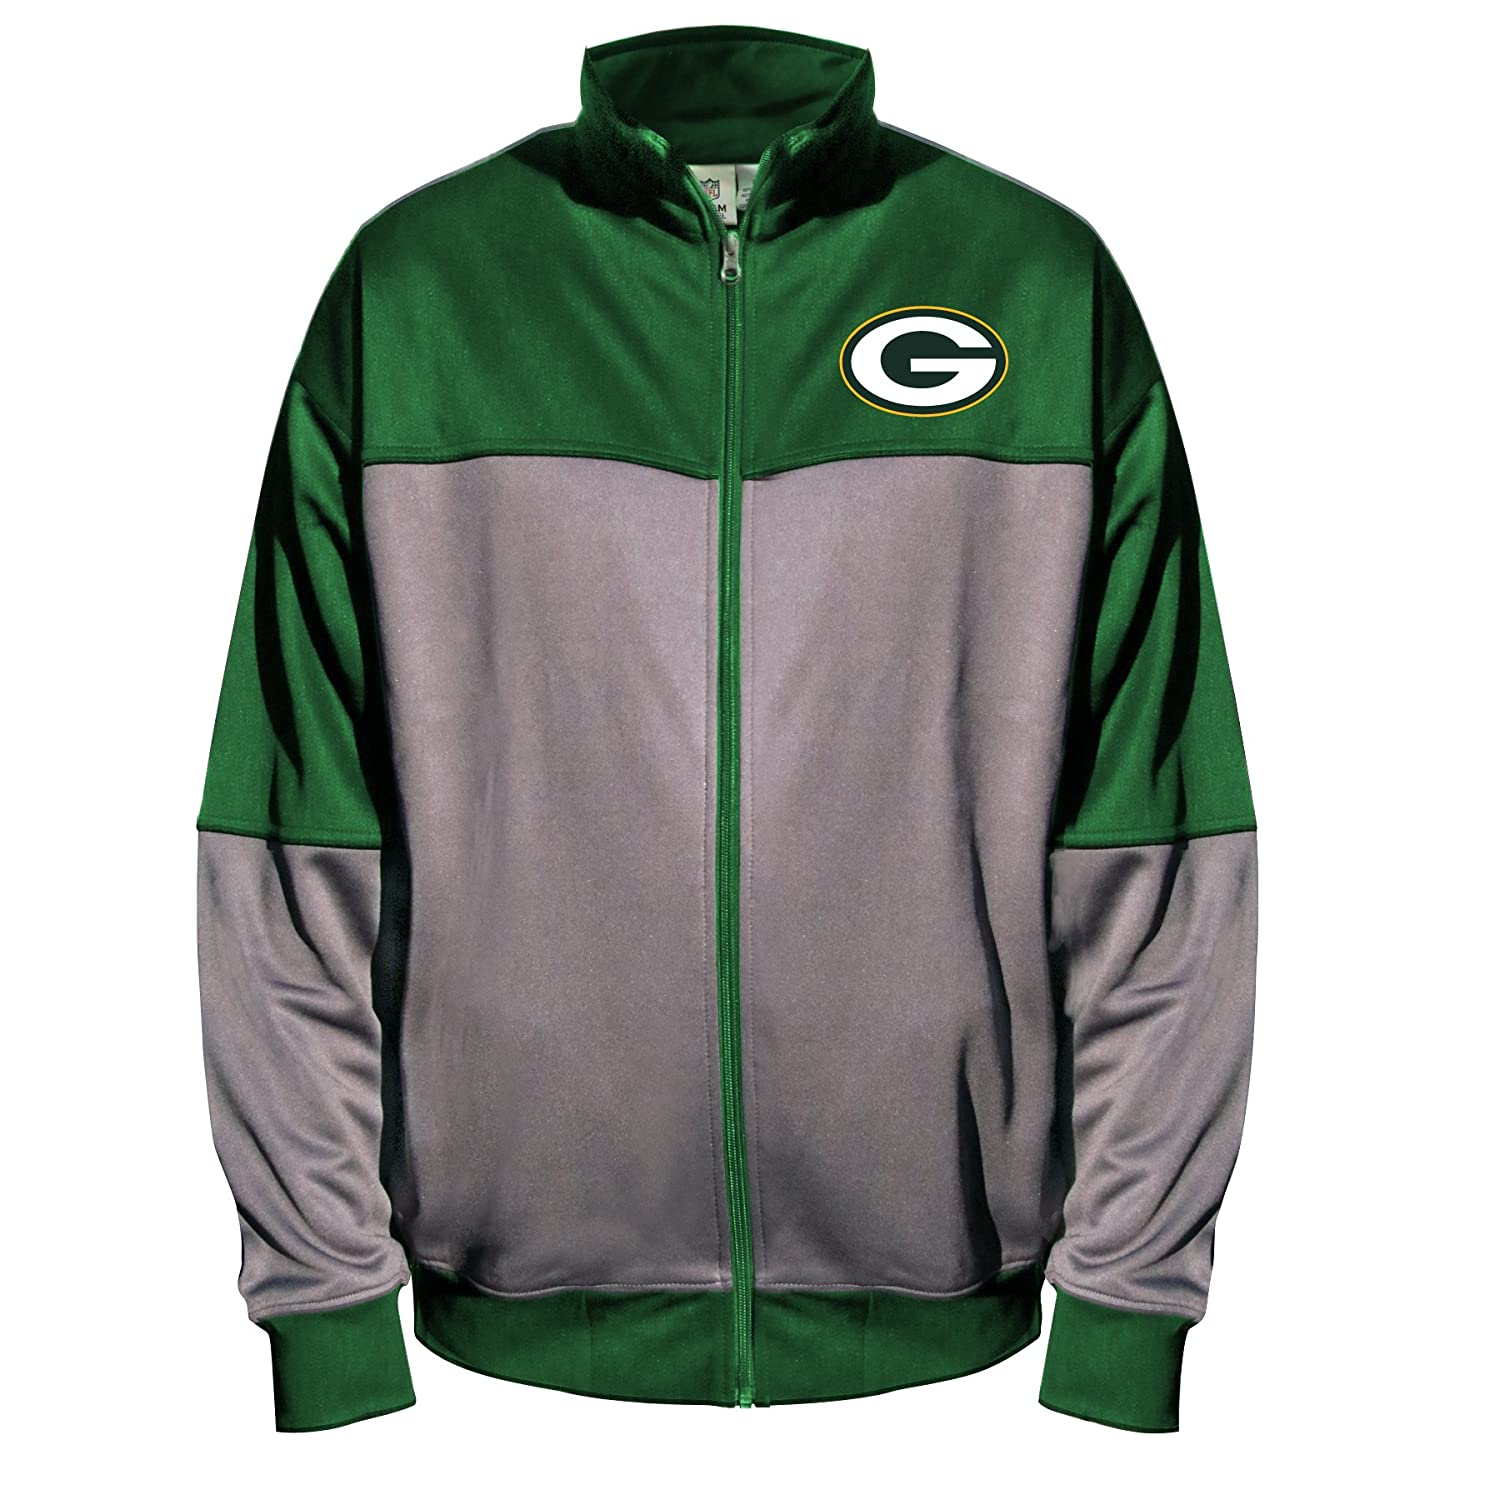 innovative design a90ab 9ad01 NFL Green Bay Packers Unisex Poly Fleece Track Jacket